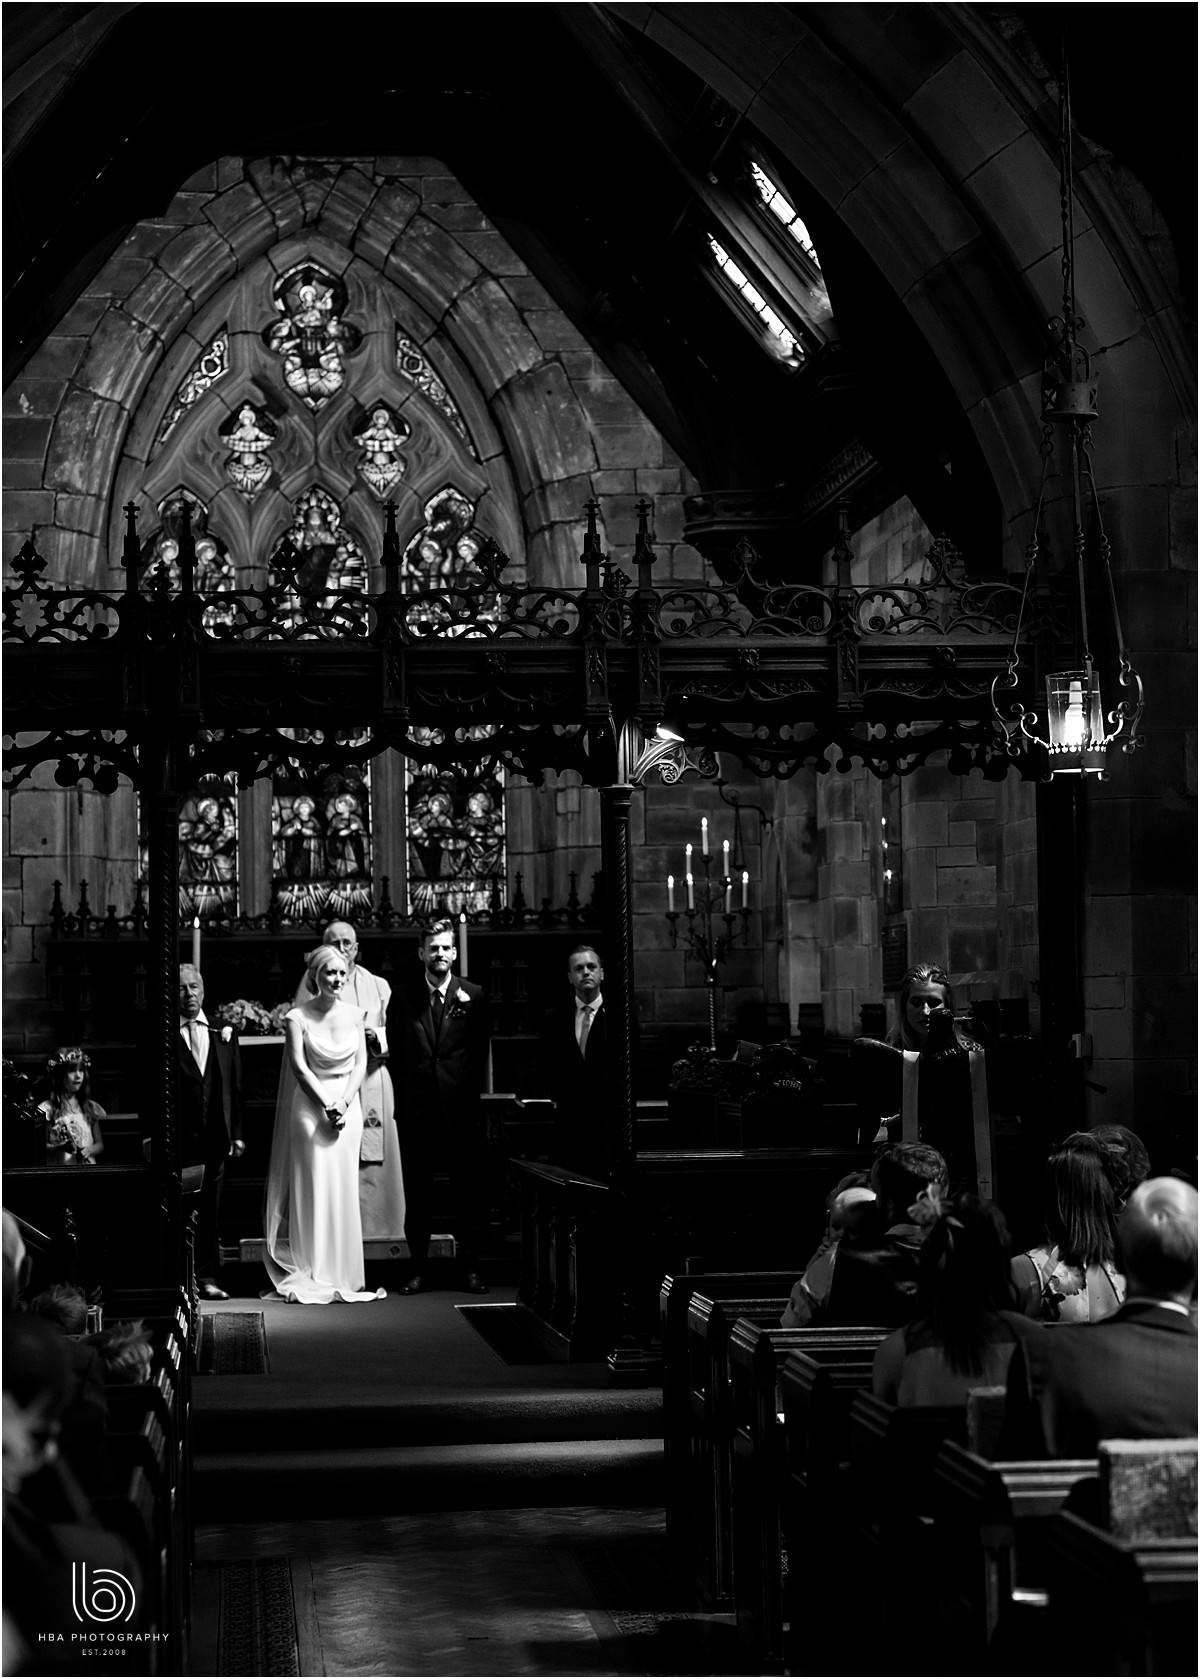 the bride and groom in church in black and white